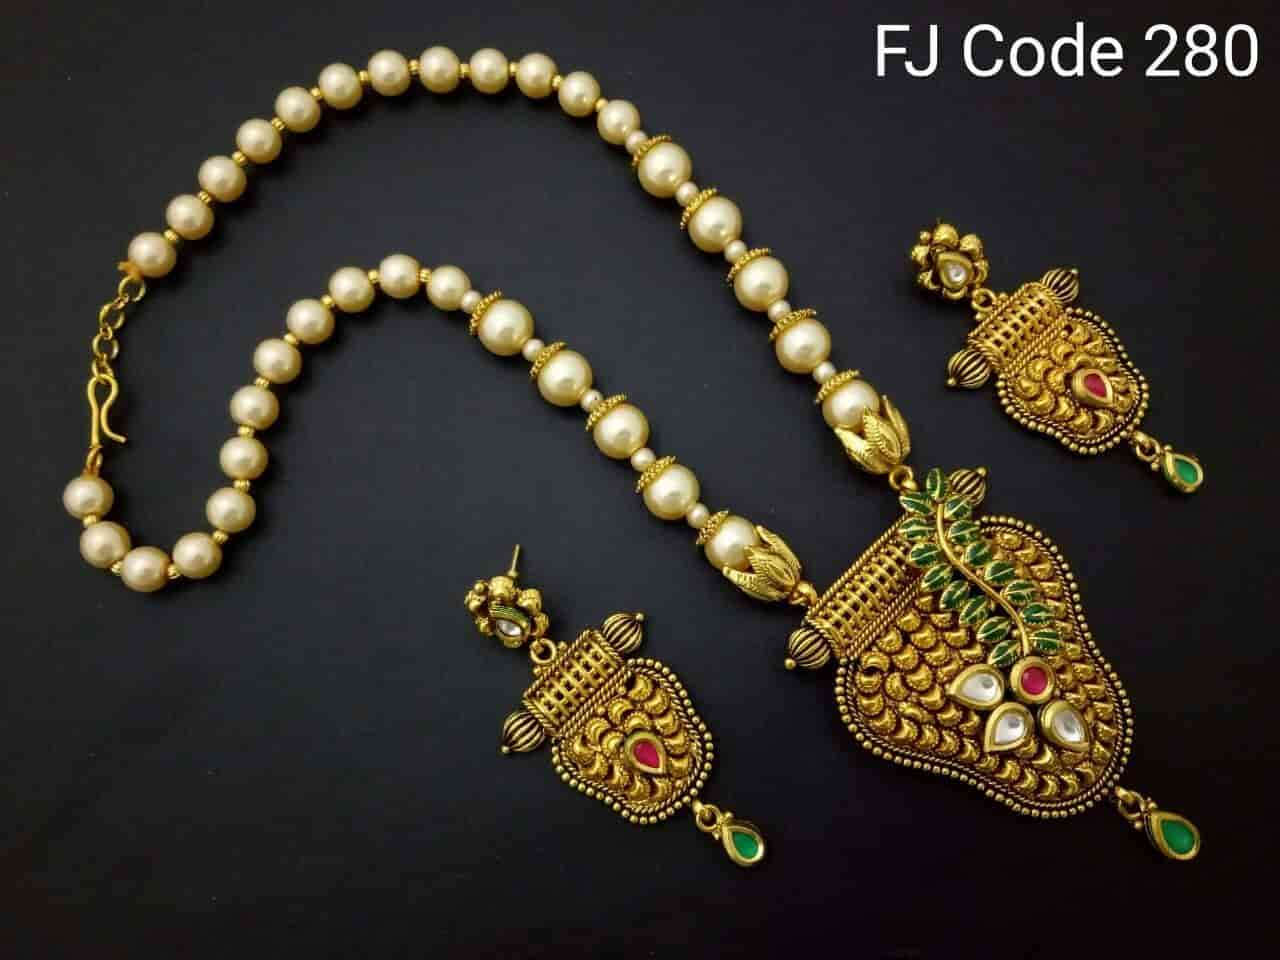 melak asia antique from ahlam jewellers singapore necklace jewellery gold at necklaces july grt